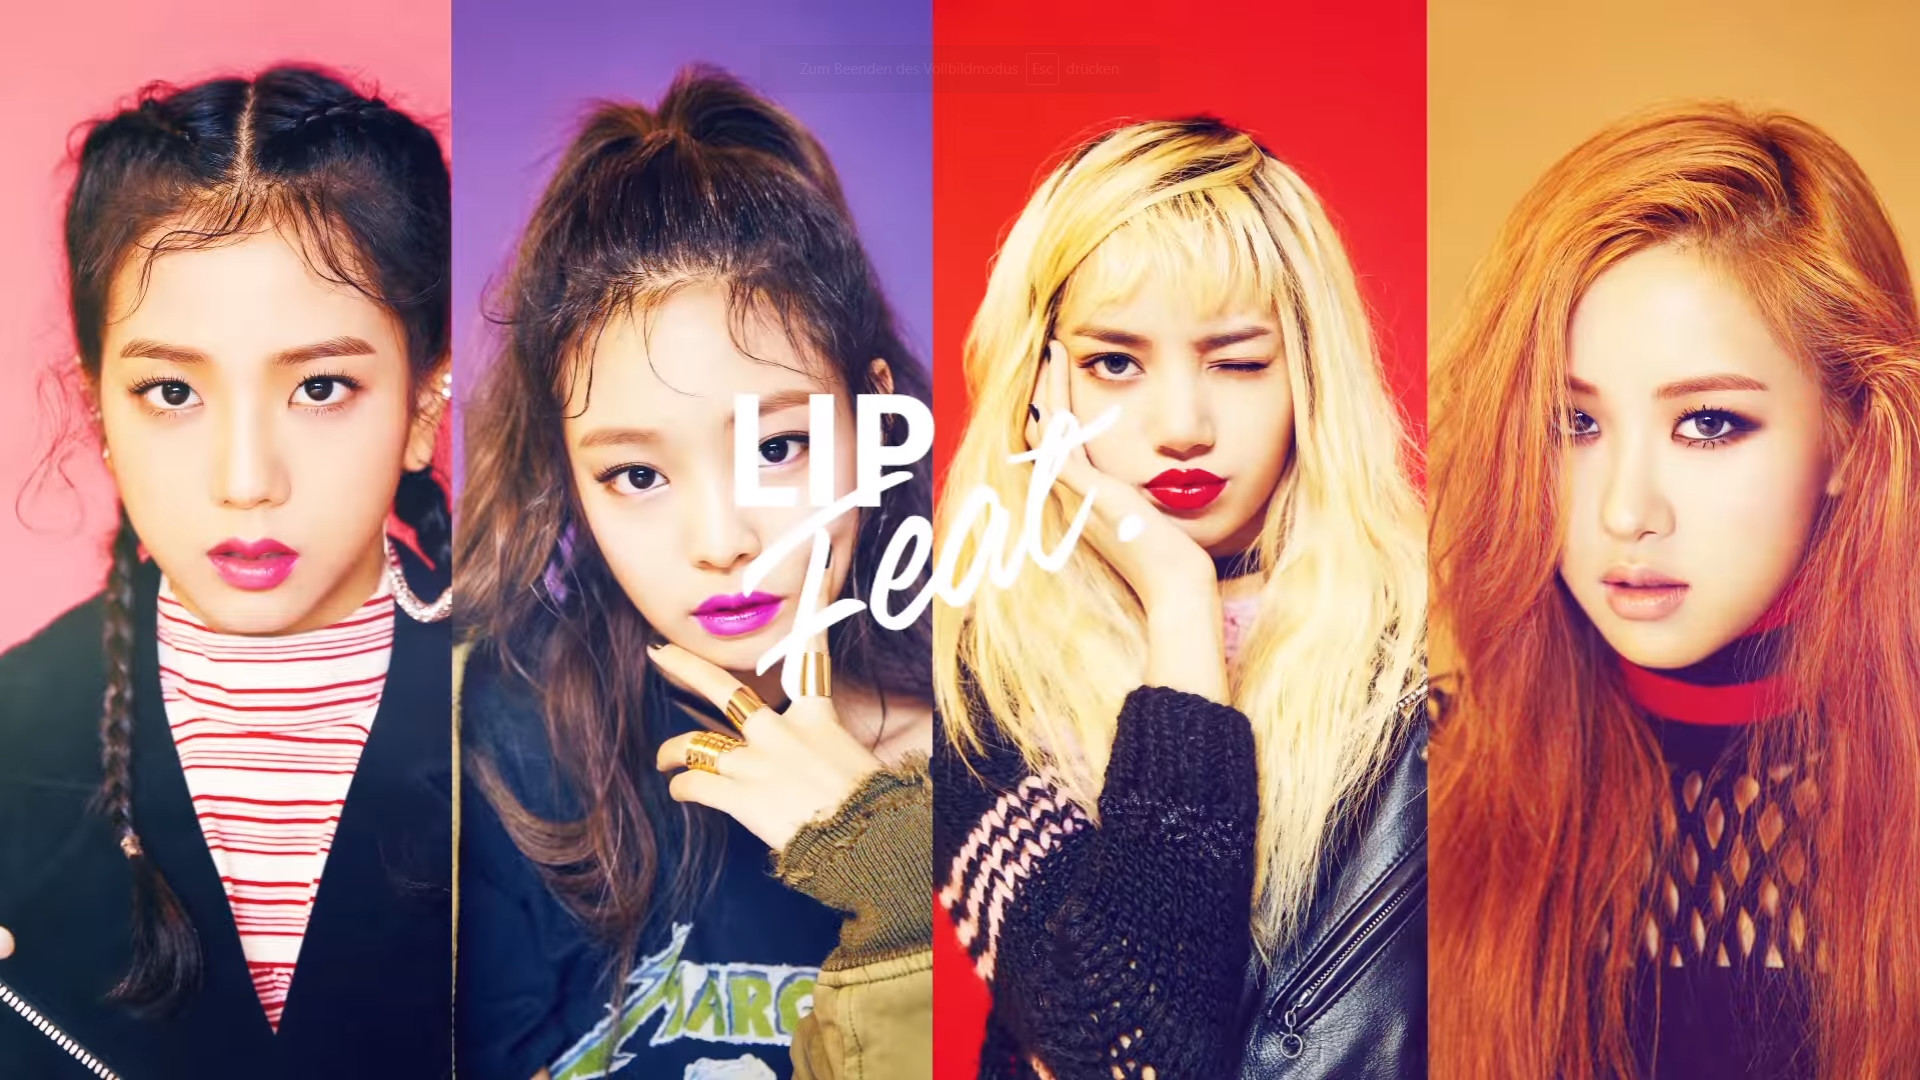 Blackpink Wallpapers 63 images 1920x1080